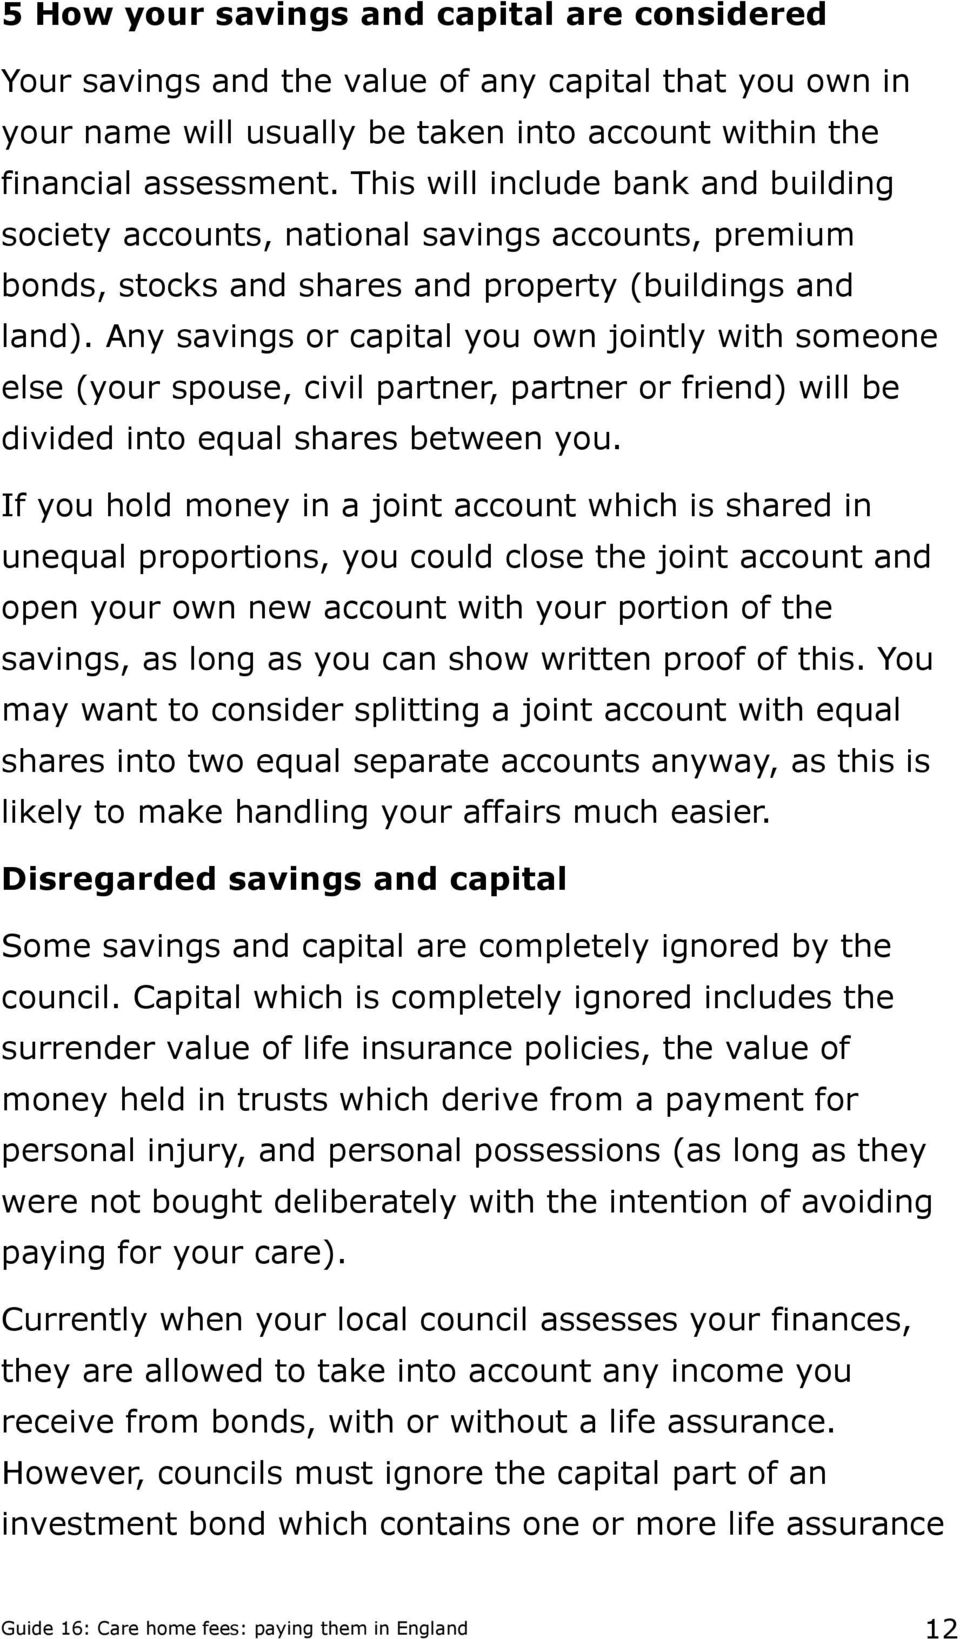 Any savings or capital you own jointly with someone else (your spouse, civil partner, partner or friend) will be divided into equal shares between you.